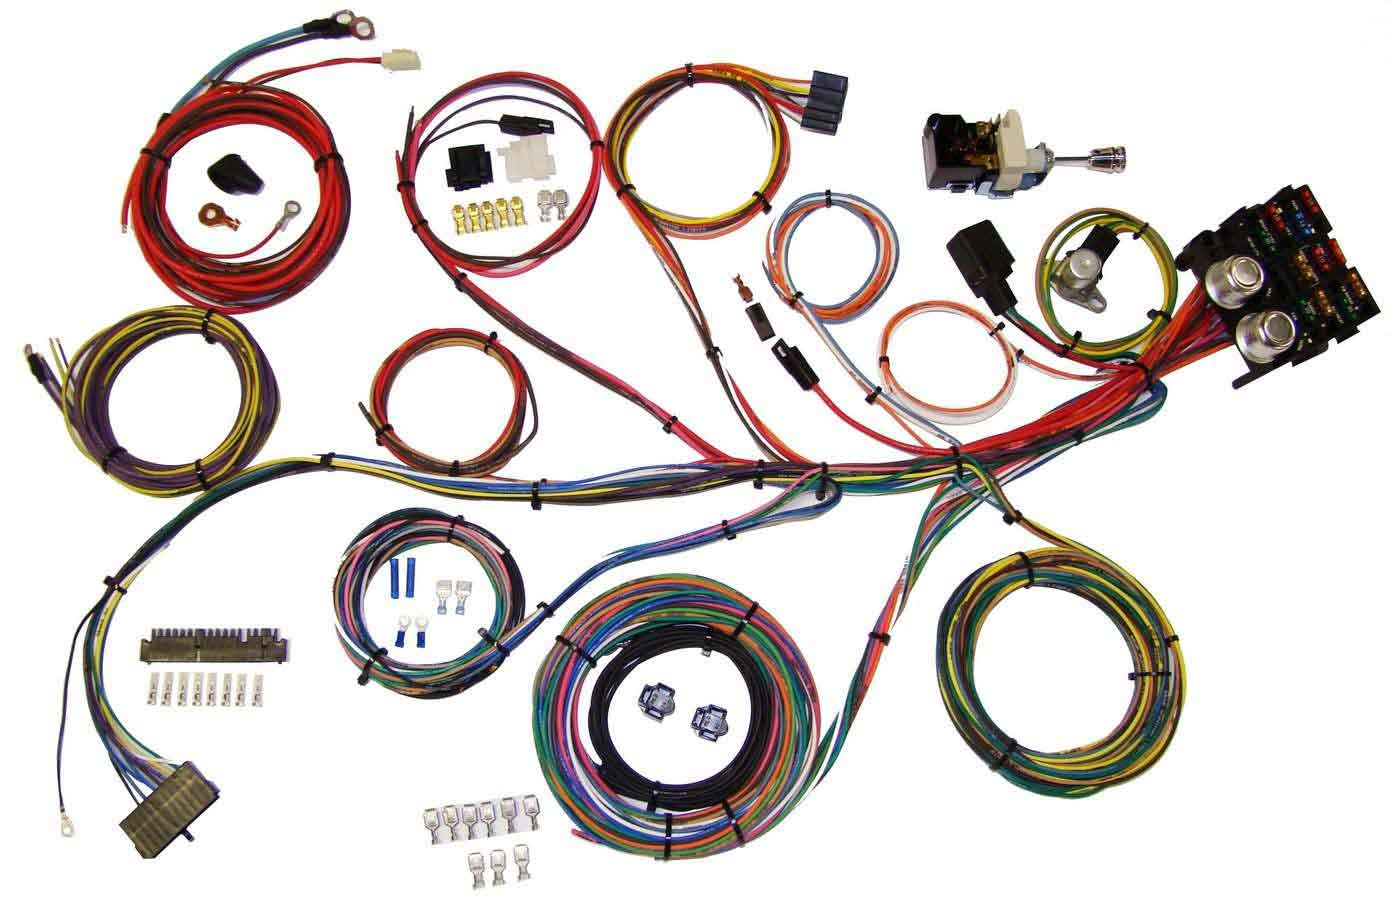 Shop for Full Wiring Harness - Universal :: Aaw Wiring Harness on